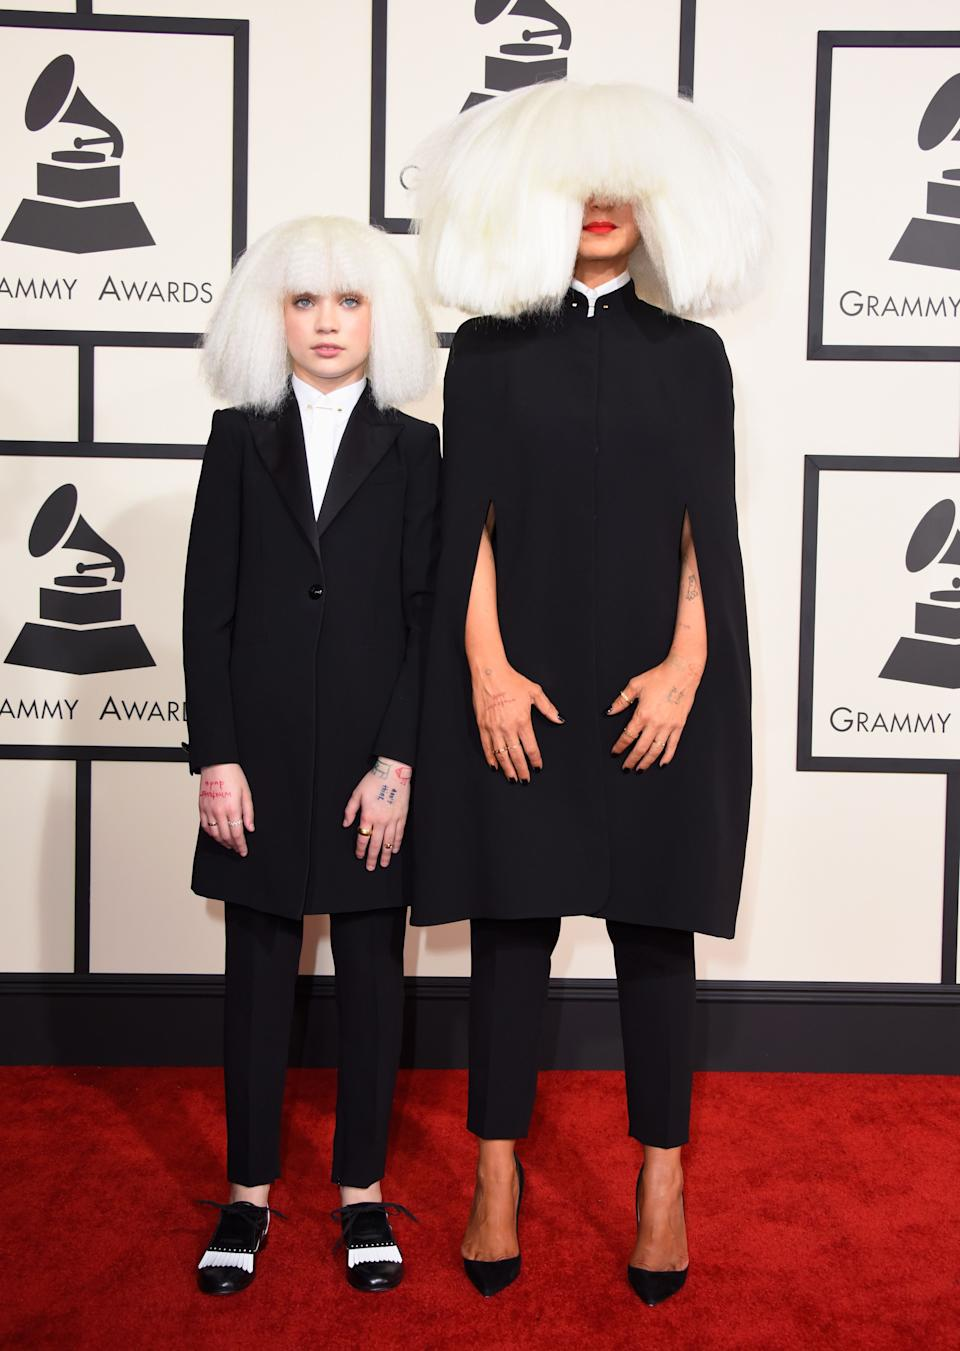 Sia and longtime collaborator Maddie Ziegler. (Photo: Getty Images)